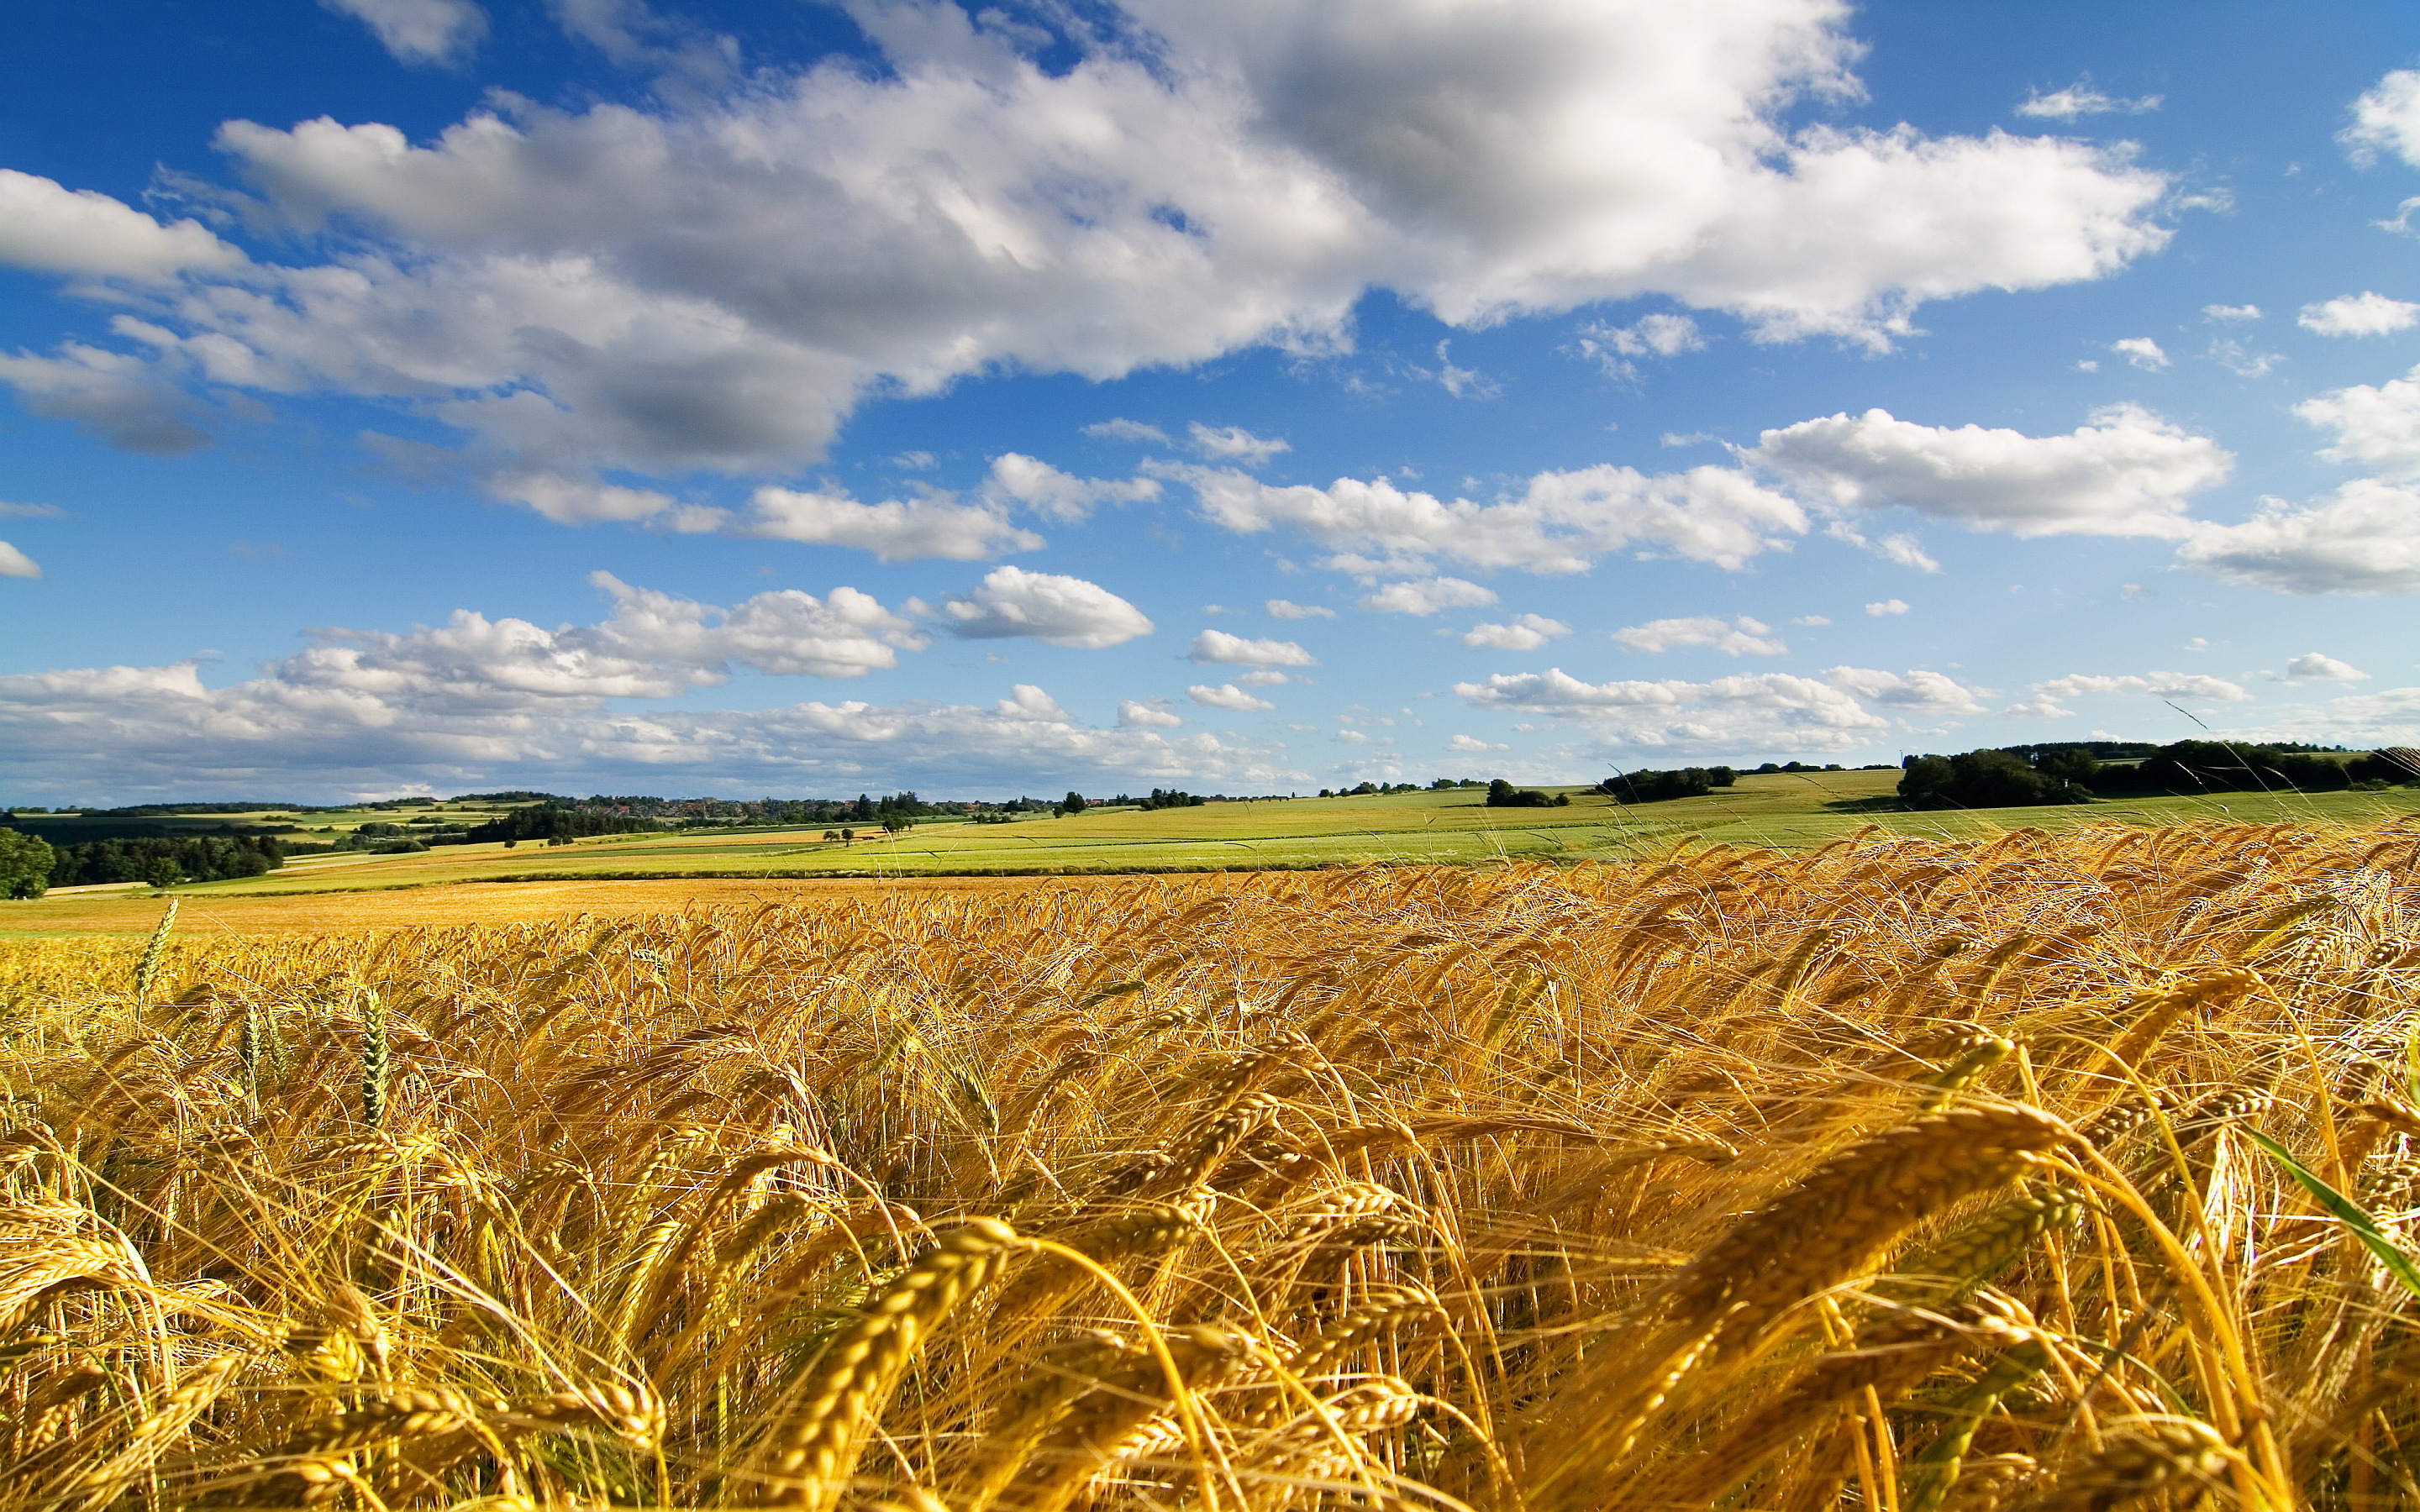 Summer field hd Wallpapers Pictures Photos Images. «